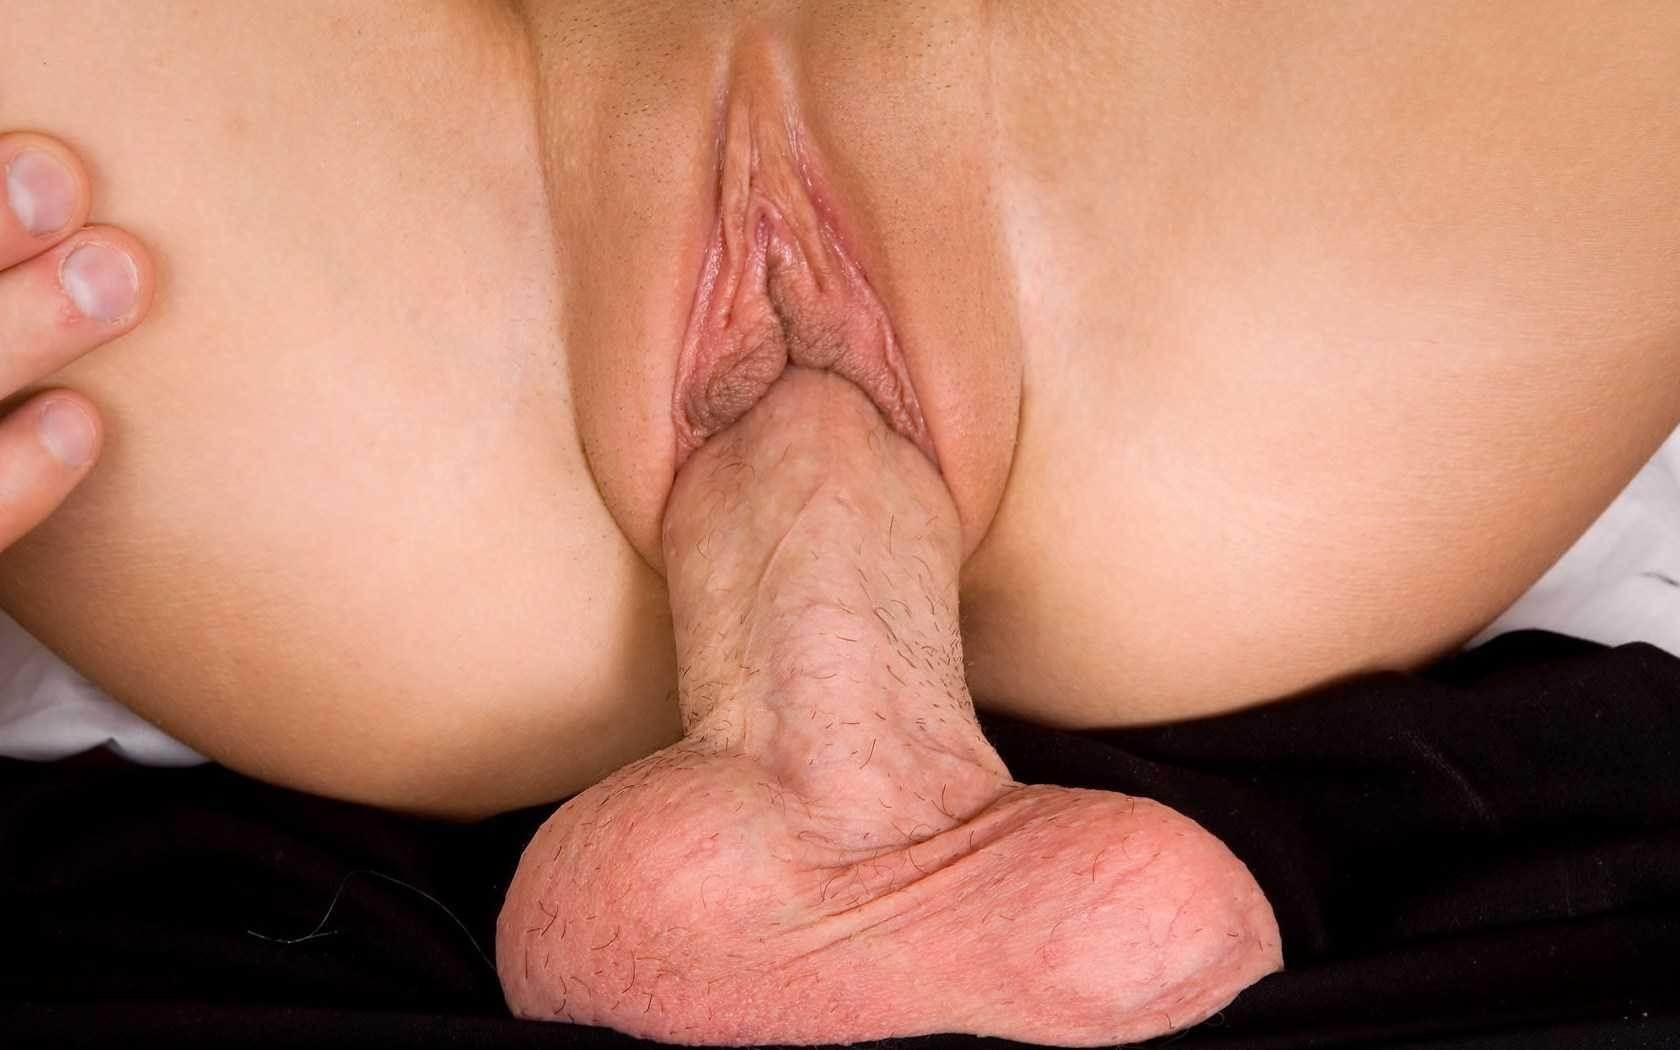 naked-hot-penis-in-vagina-sexting-porn-mature